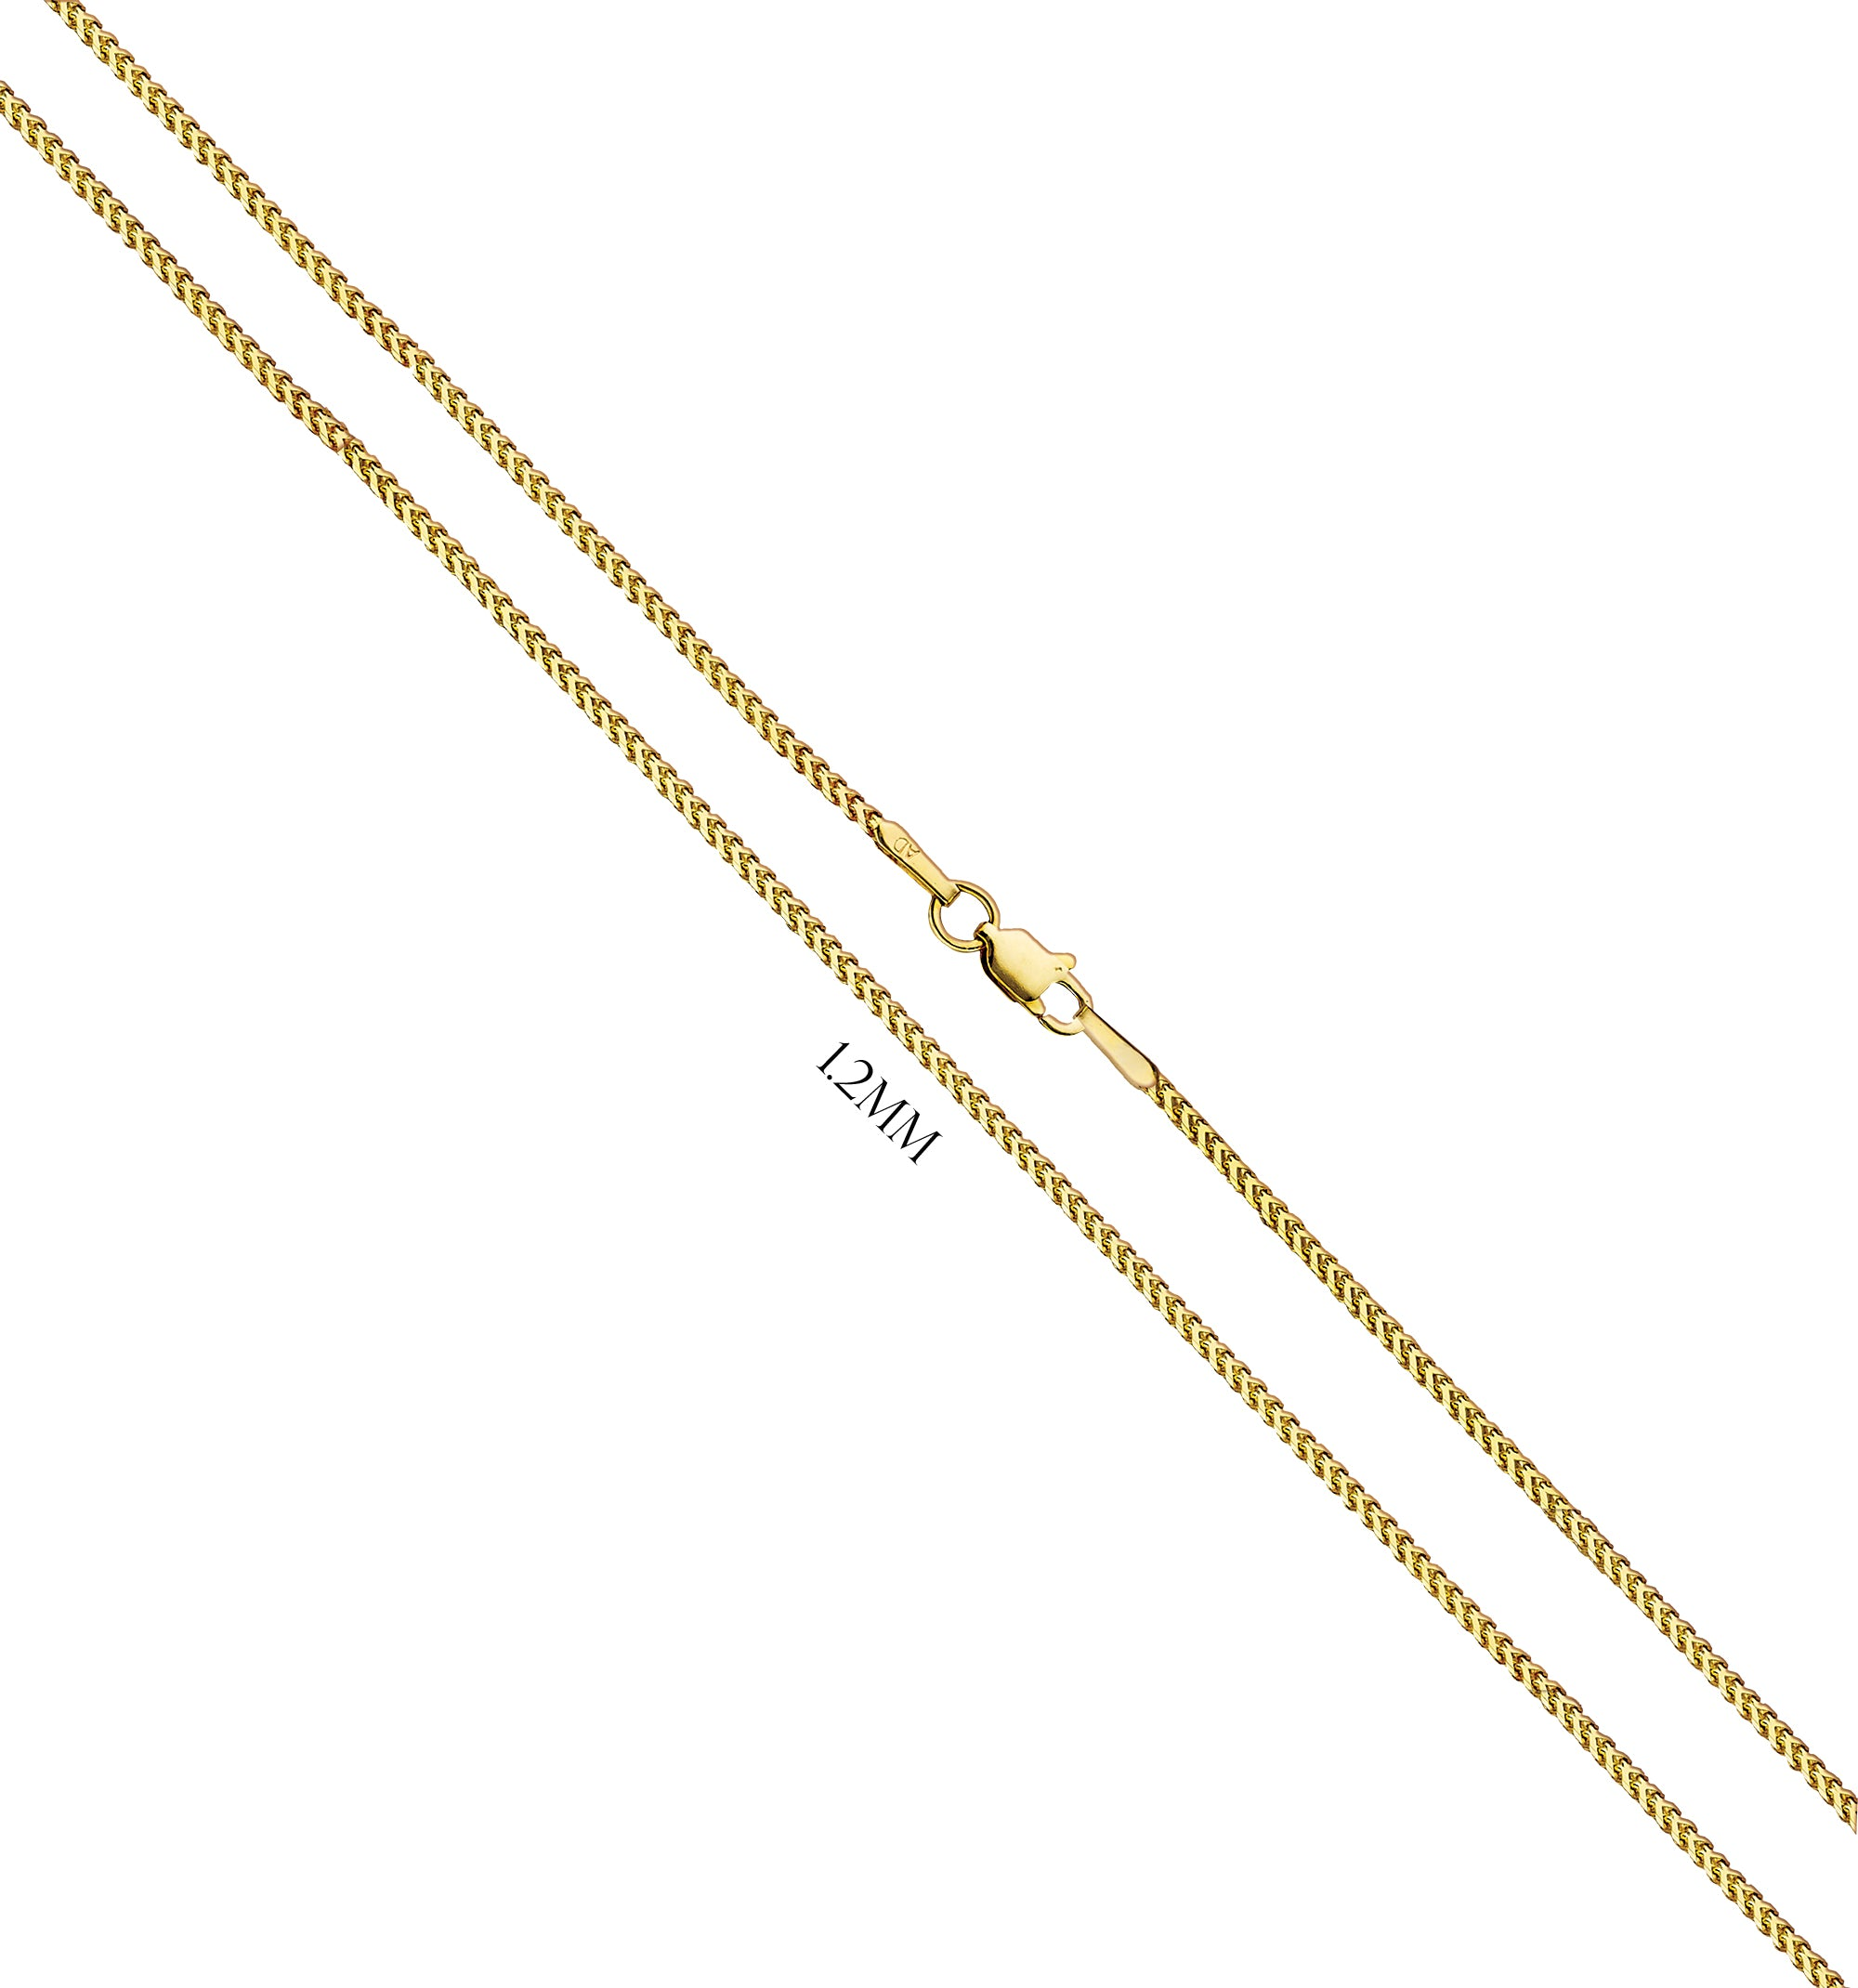 Franco Chain In Solid 14K Yellow Gold - 1.2MM